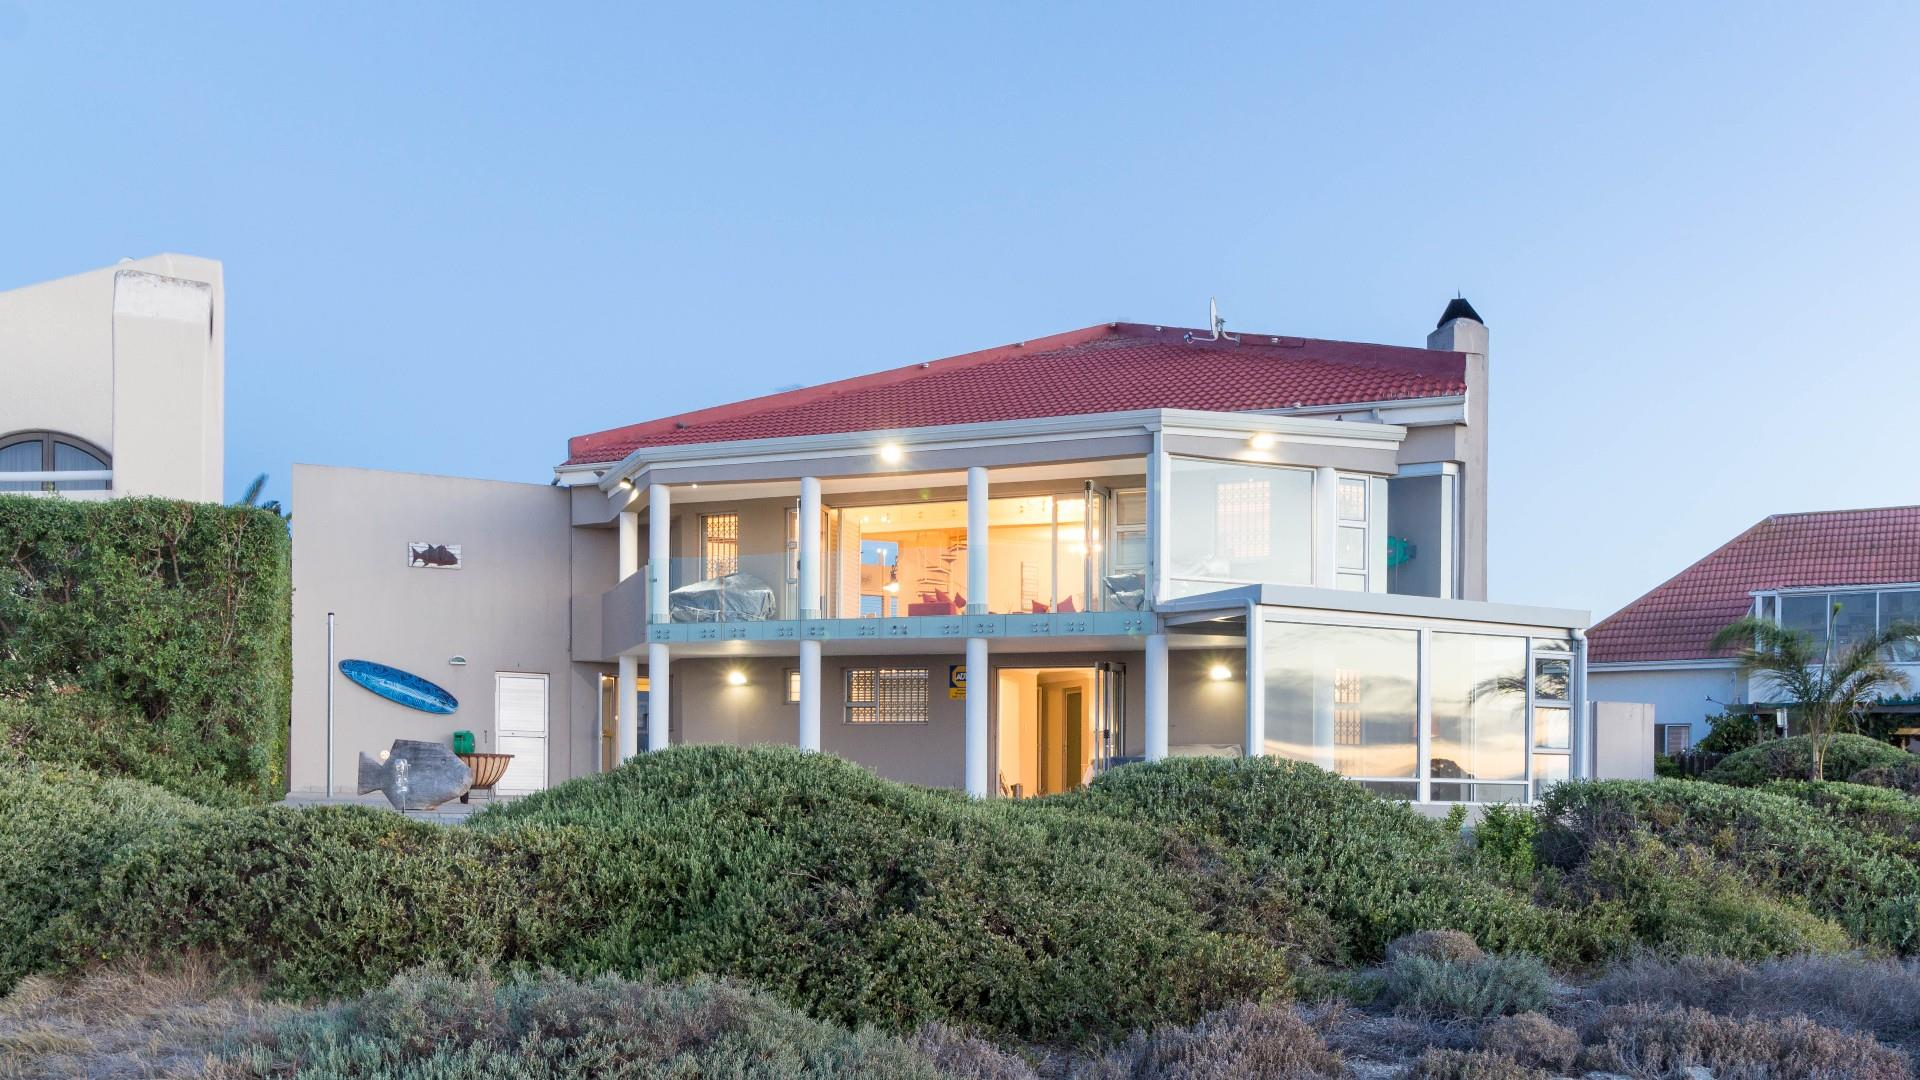 23 Sheila, Port Owen, Velddrif - ZAF (photo 1)